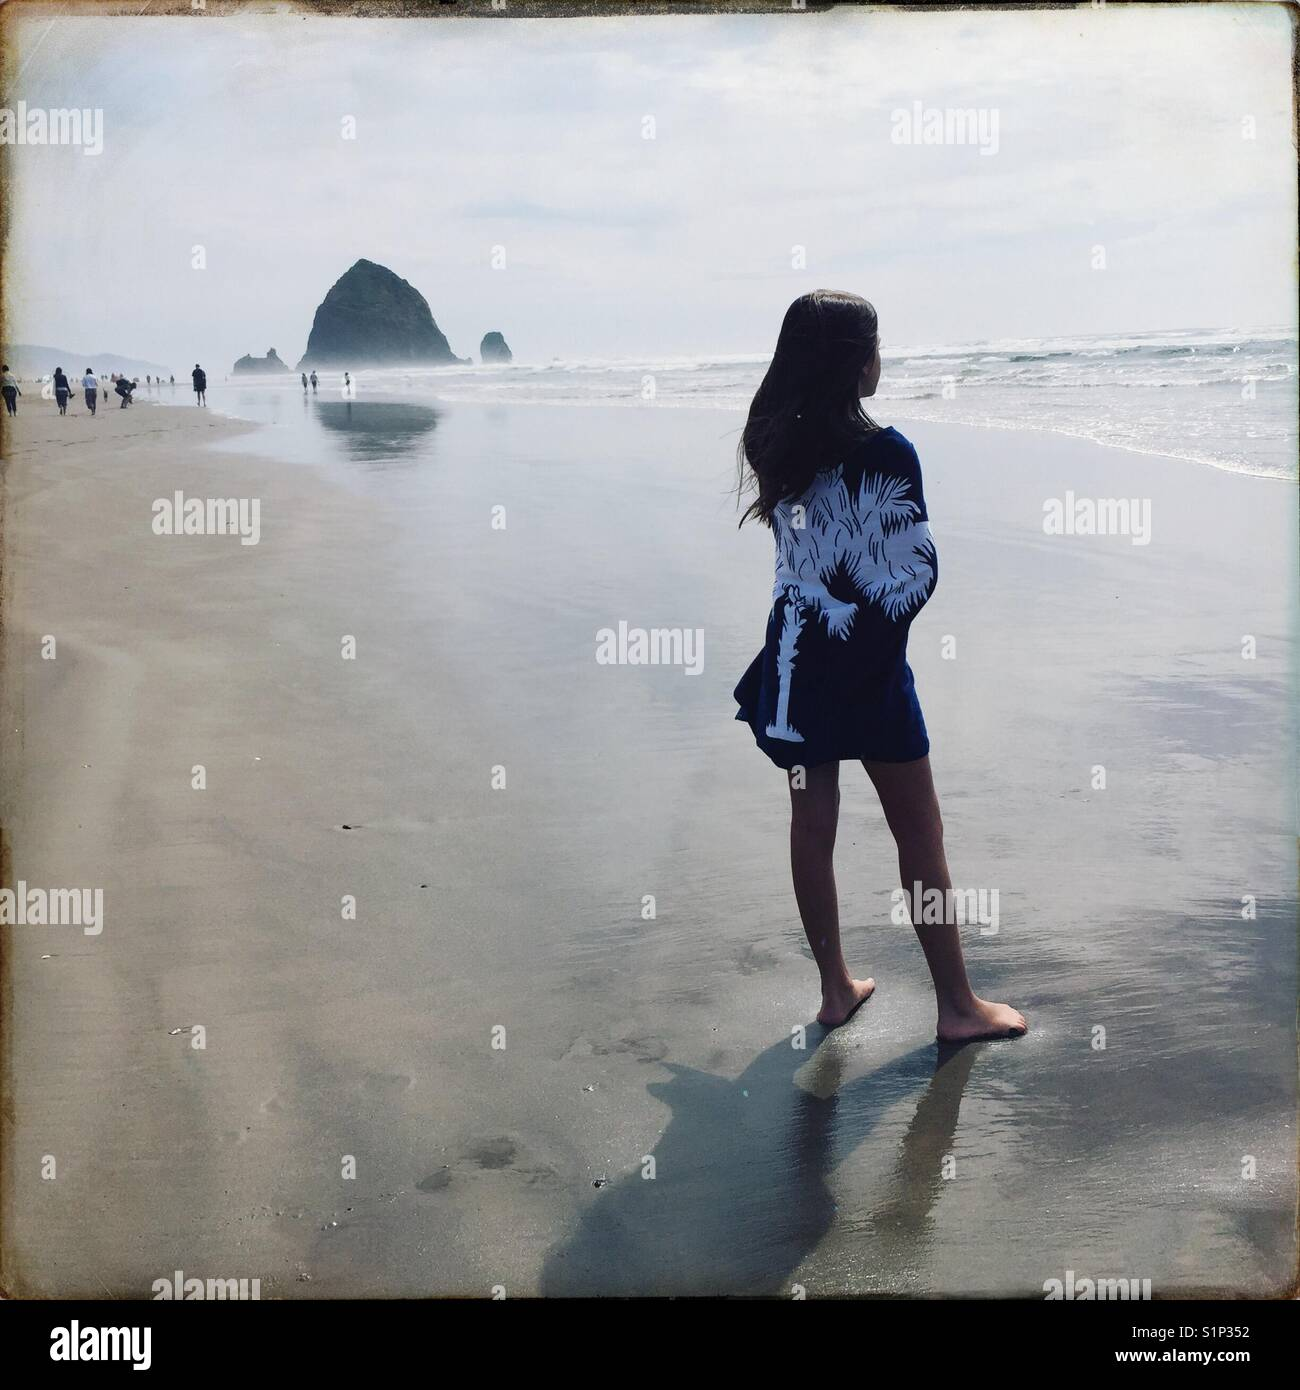 A child wrapped in a beach towel stands near the waters edge at cannon beach, Oregon on a summer day. - Stock Image